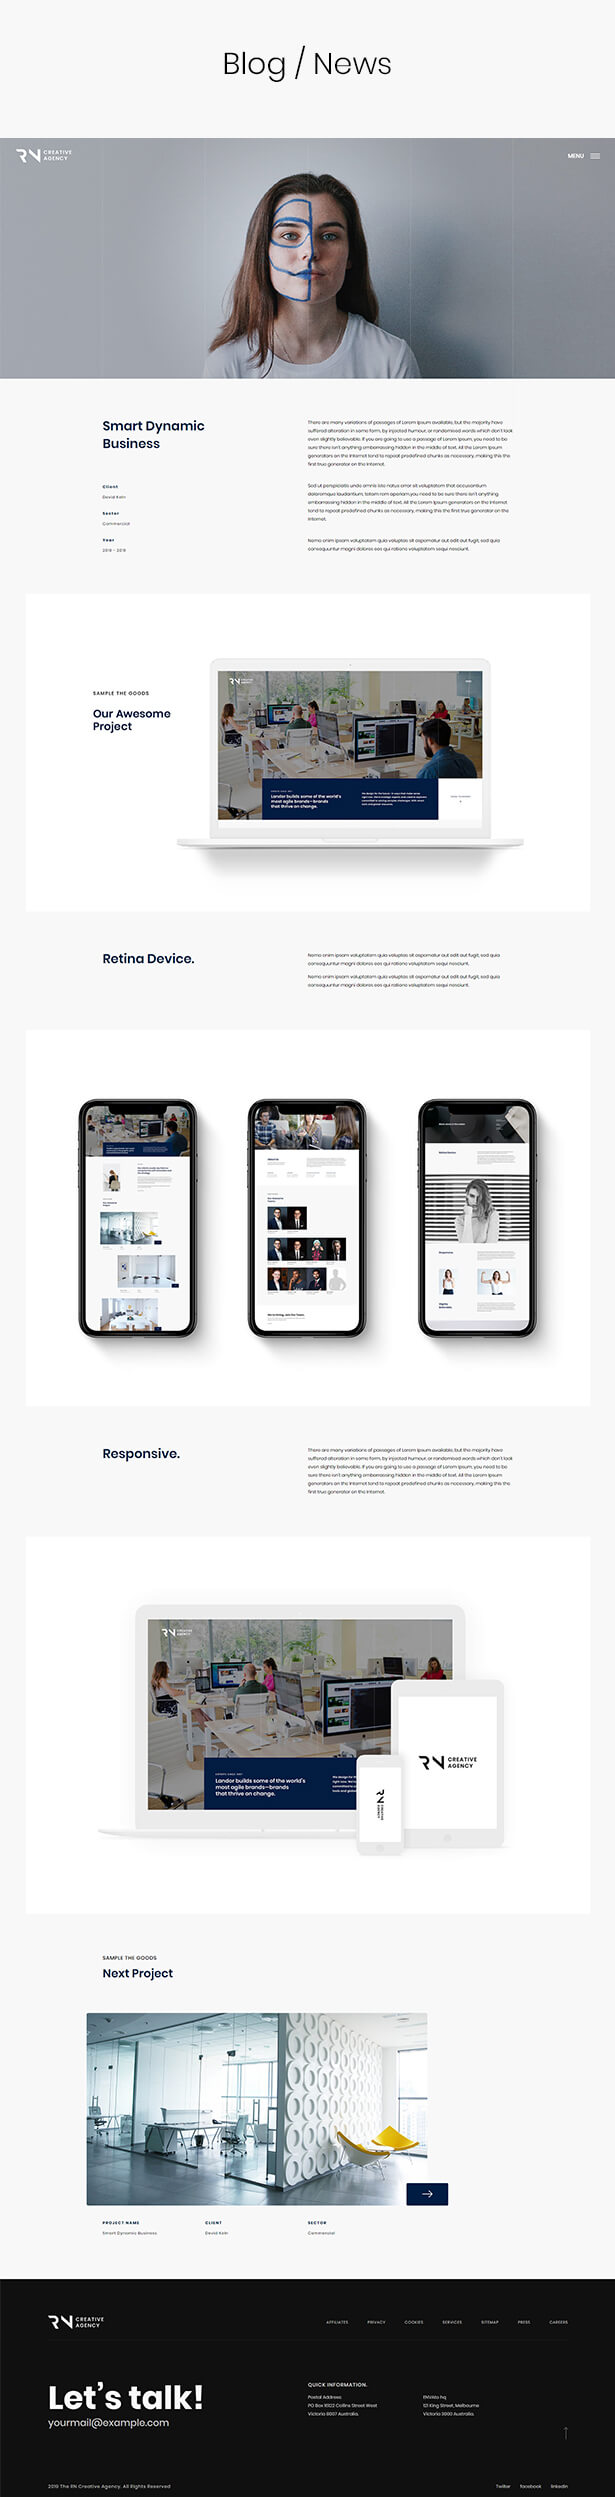 TheRN - React Gatsby Creative Agency  Template - 6